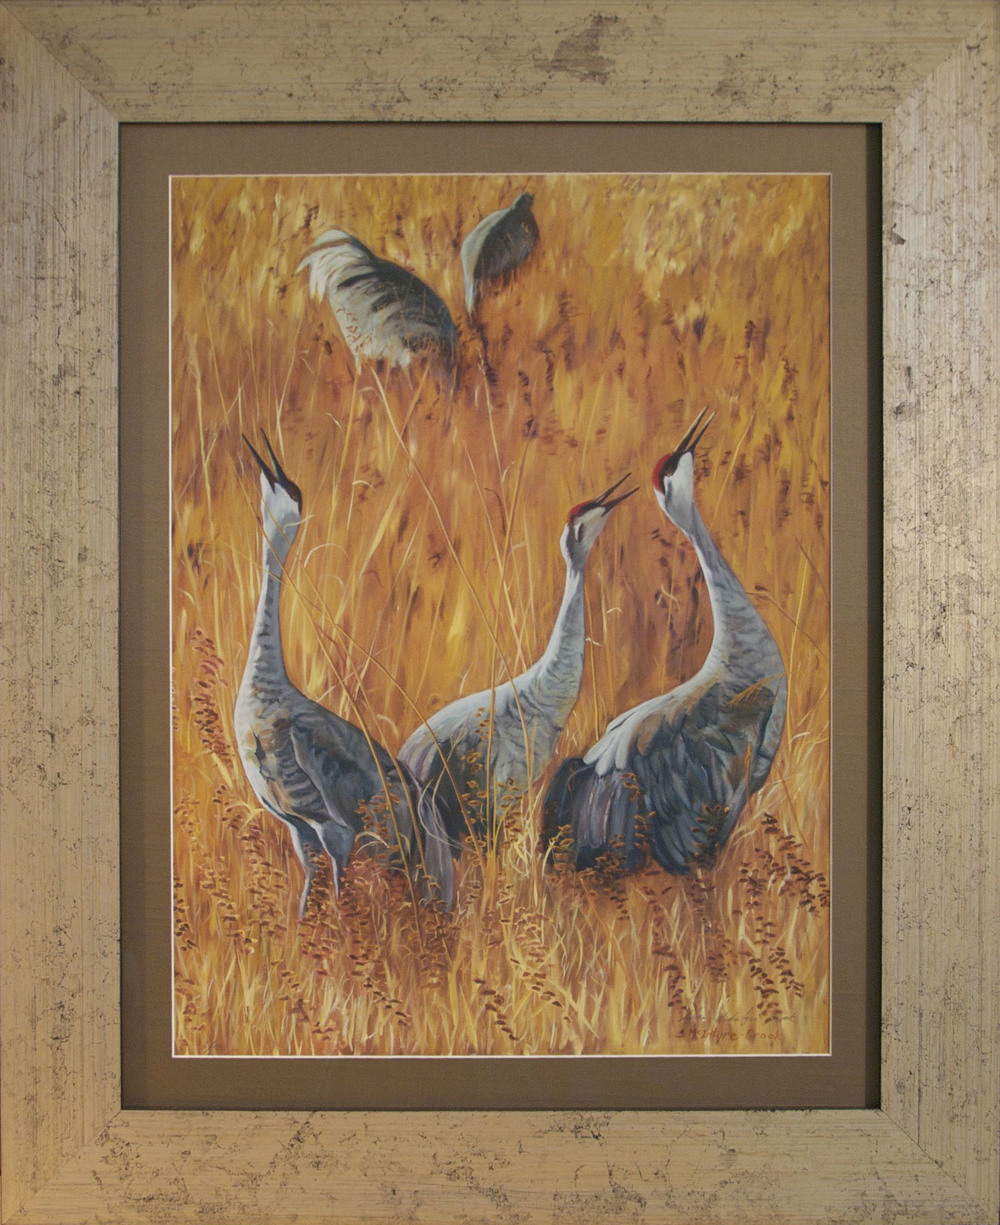 "Print: Sandhill Cranes Calling #5 of 50 limited edition  24"" x 18"" on frame: 29"" x 34.5""  Ultrachrome HDR ink; from original oil on canvass 'Sandhill Cranes Calling'; 48""x 36""  sold"